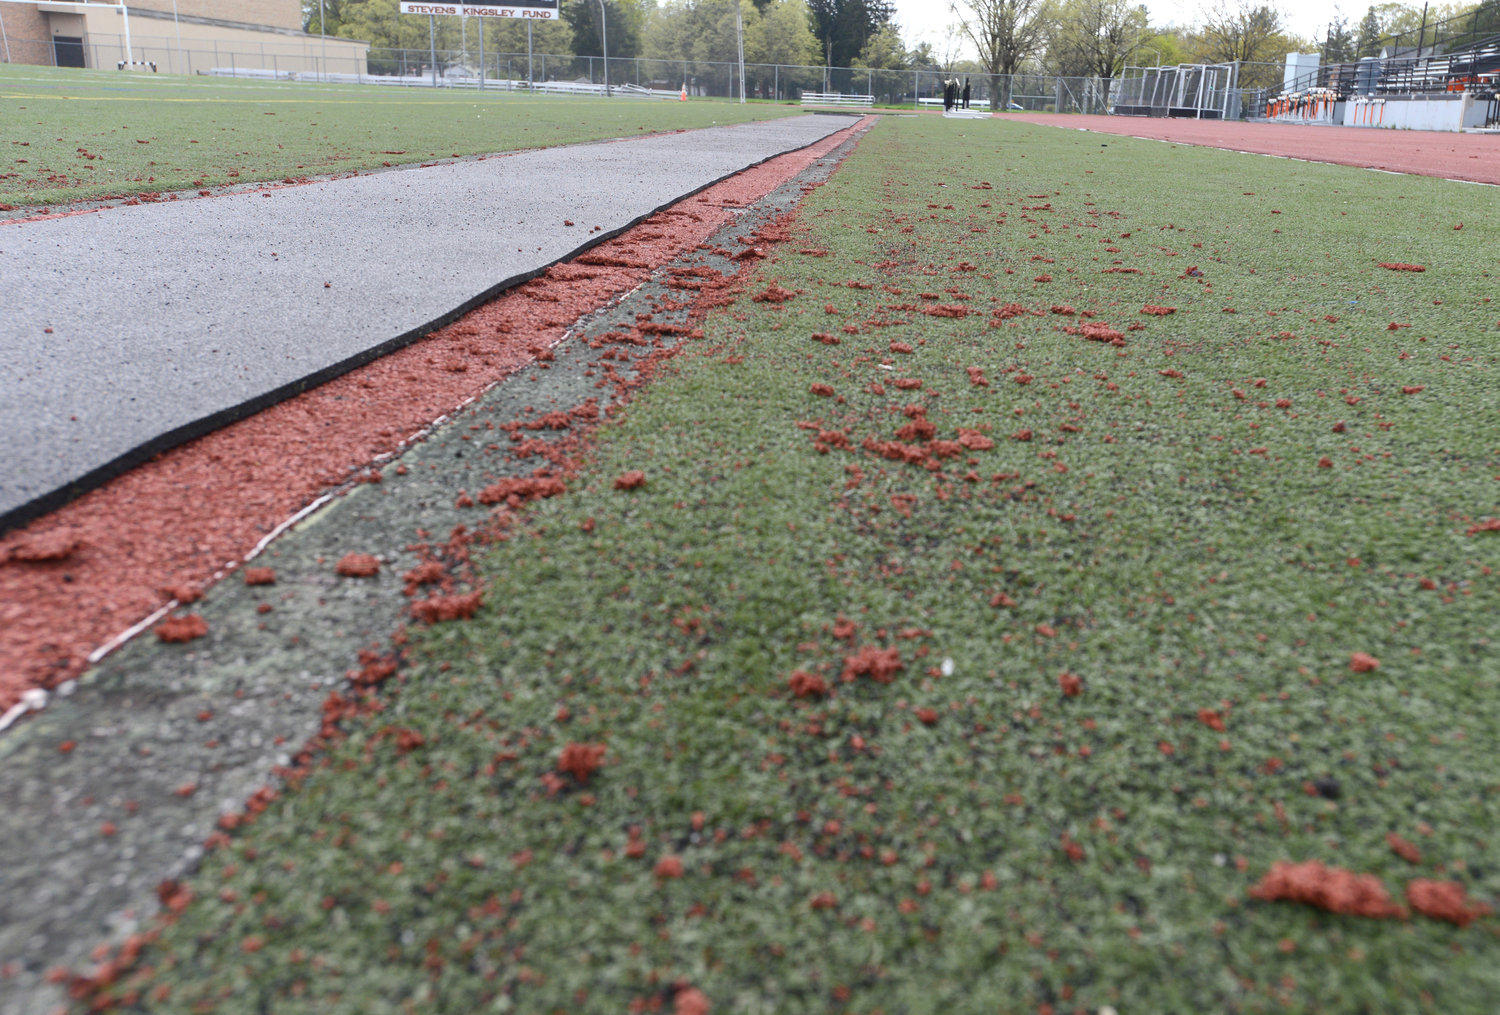 TORN UP — Pieces of the runway leading to the jumping pit on the west side of Rome Free Academy stadium are scattered about the facility's artificial turf.  The track, worn down by years of use and periodically patched and repaired, won't host any boys or girls varsity meets this year, according to school district officials, because of its condition.